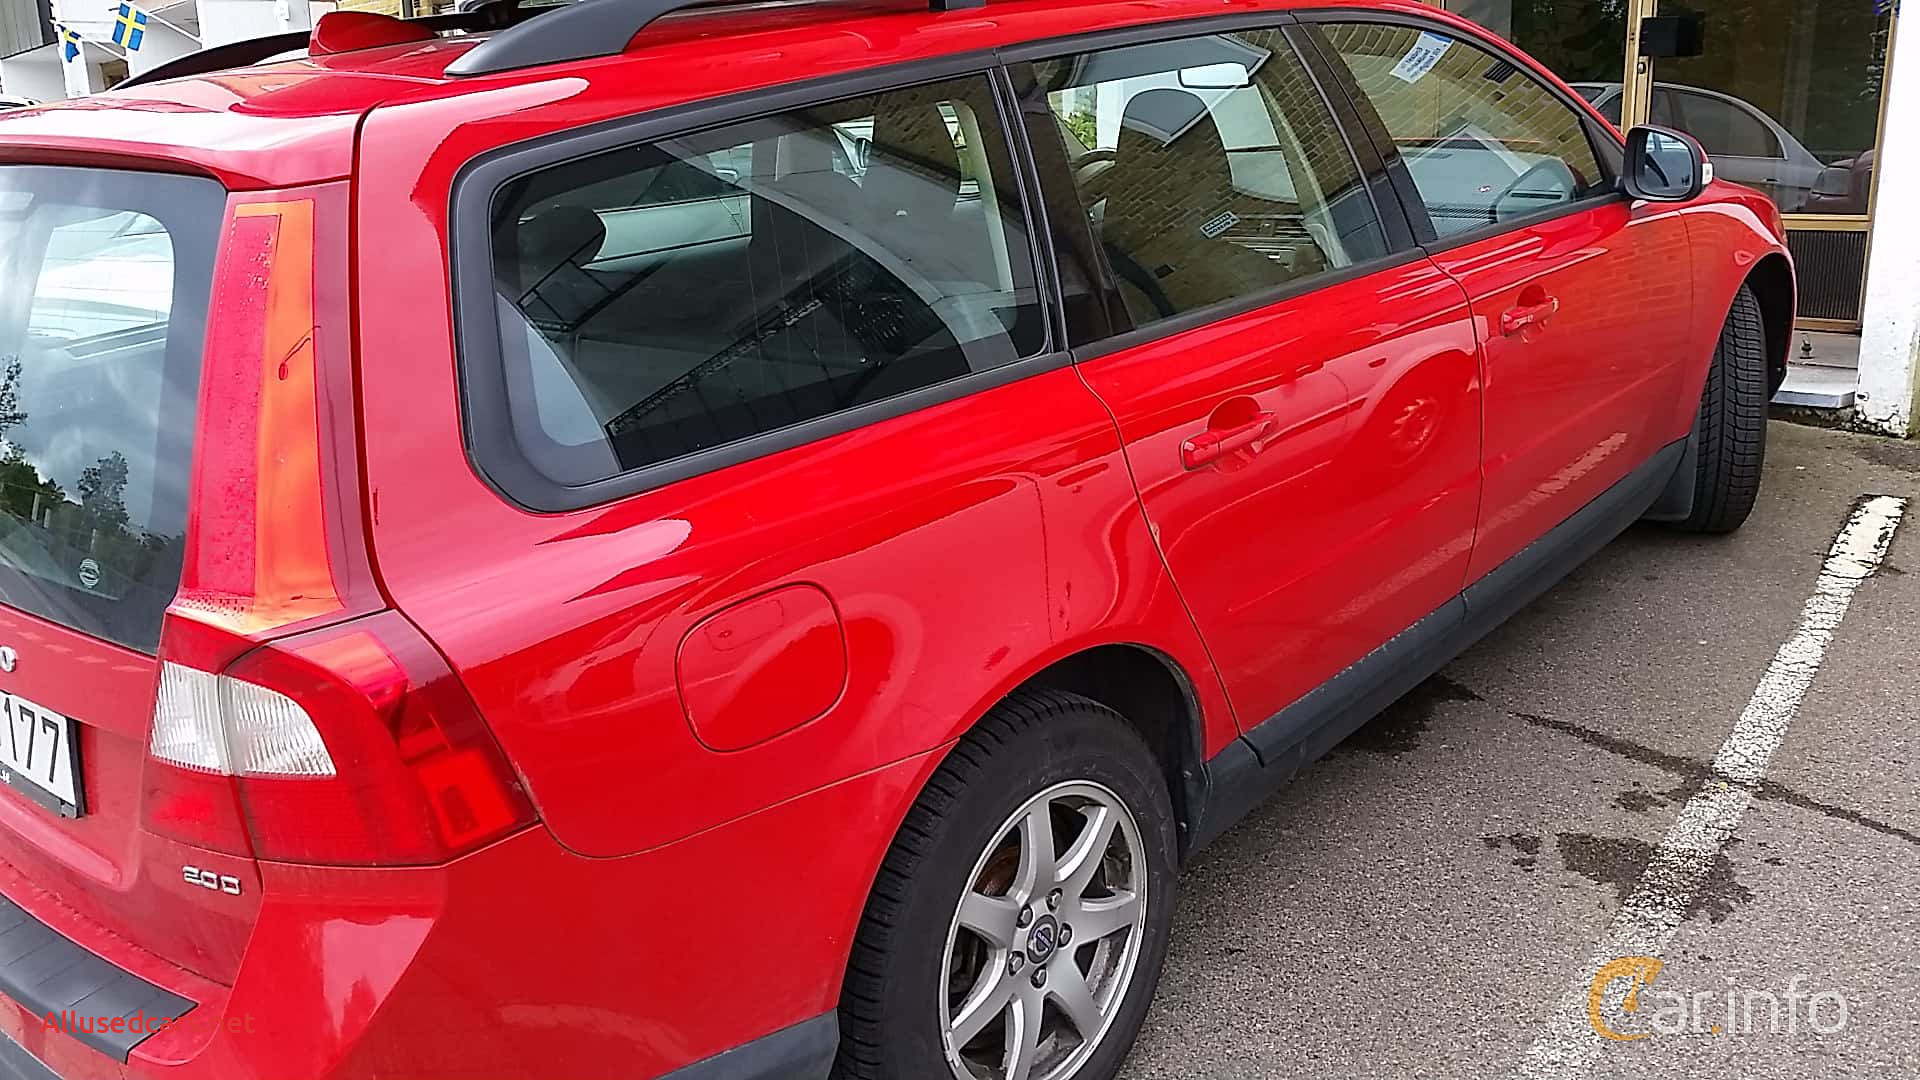 Xc70 Awesome Volvo V70 Generation 24 2 0 D Manual 6 Speed